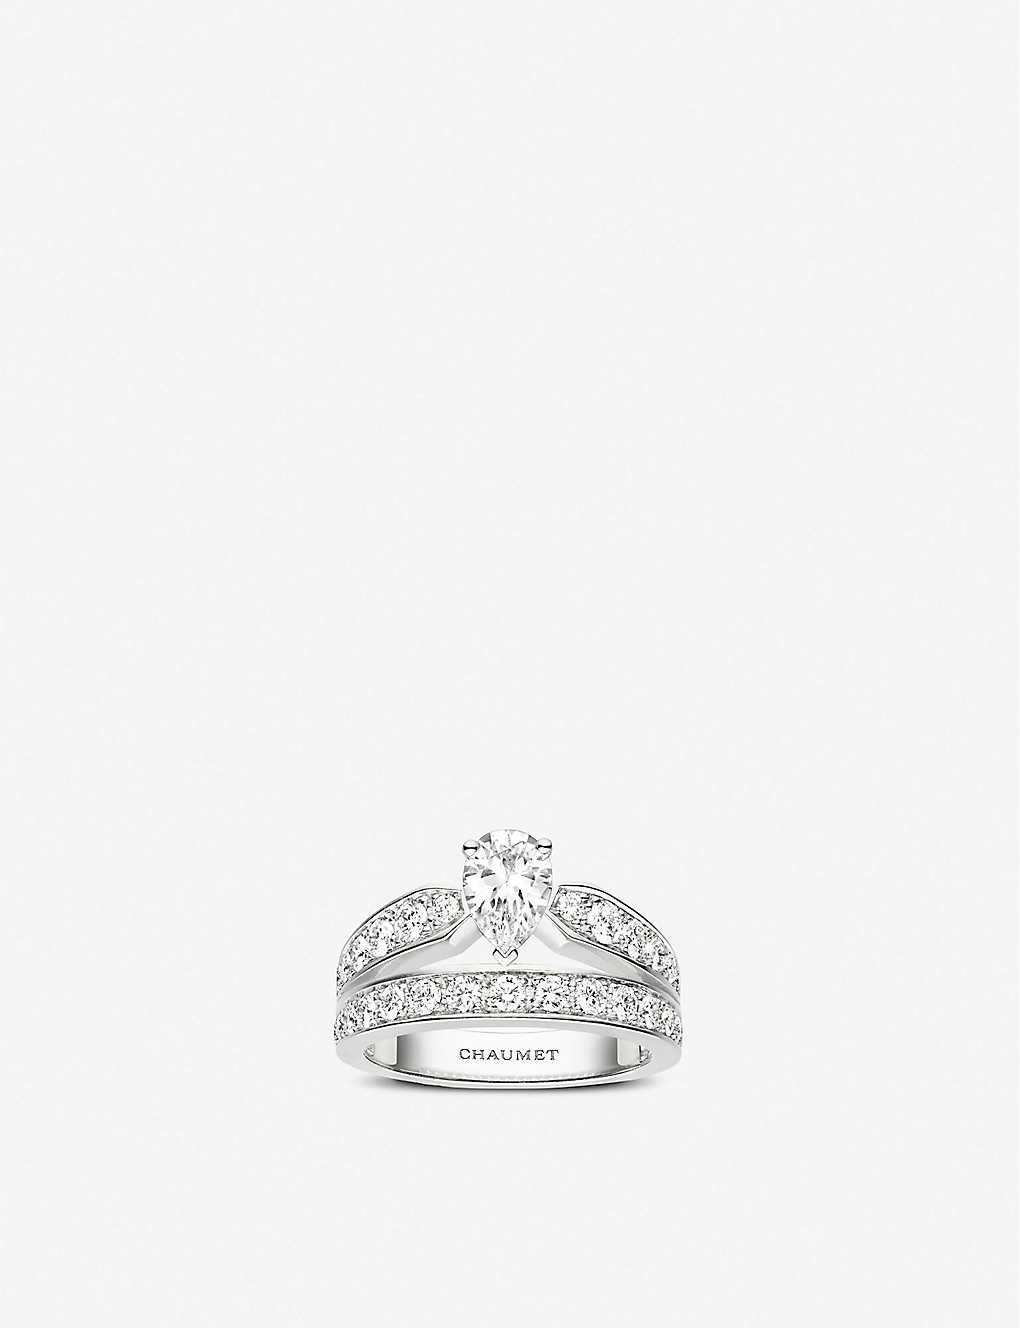 CHAUMET: Joséphine Aube Printanière 18ct white-gold and diamond ring